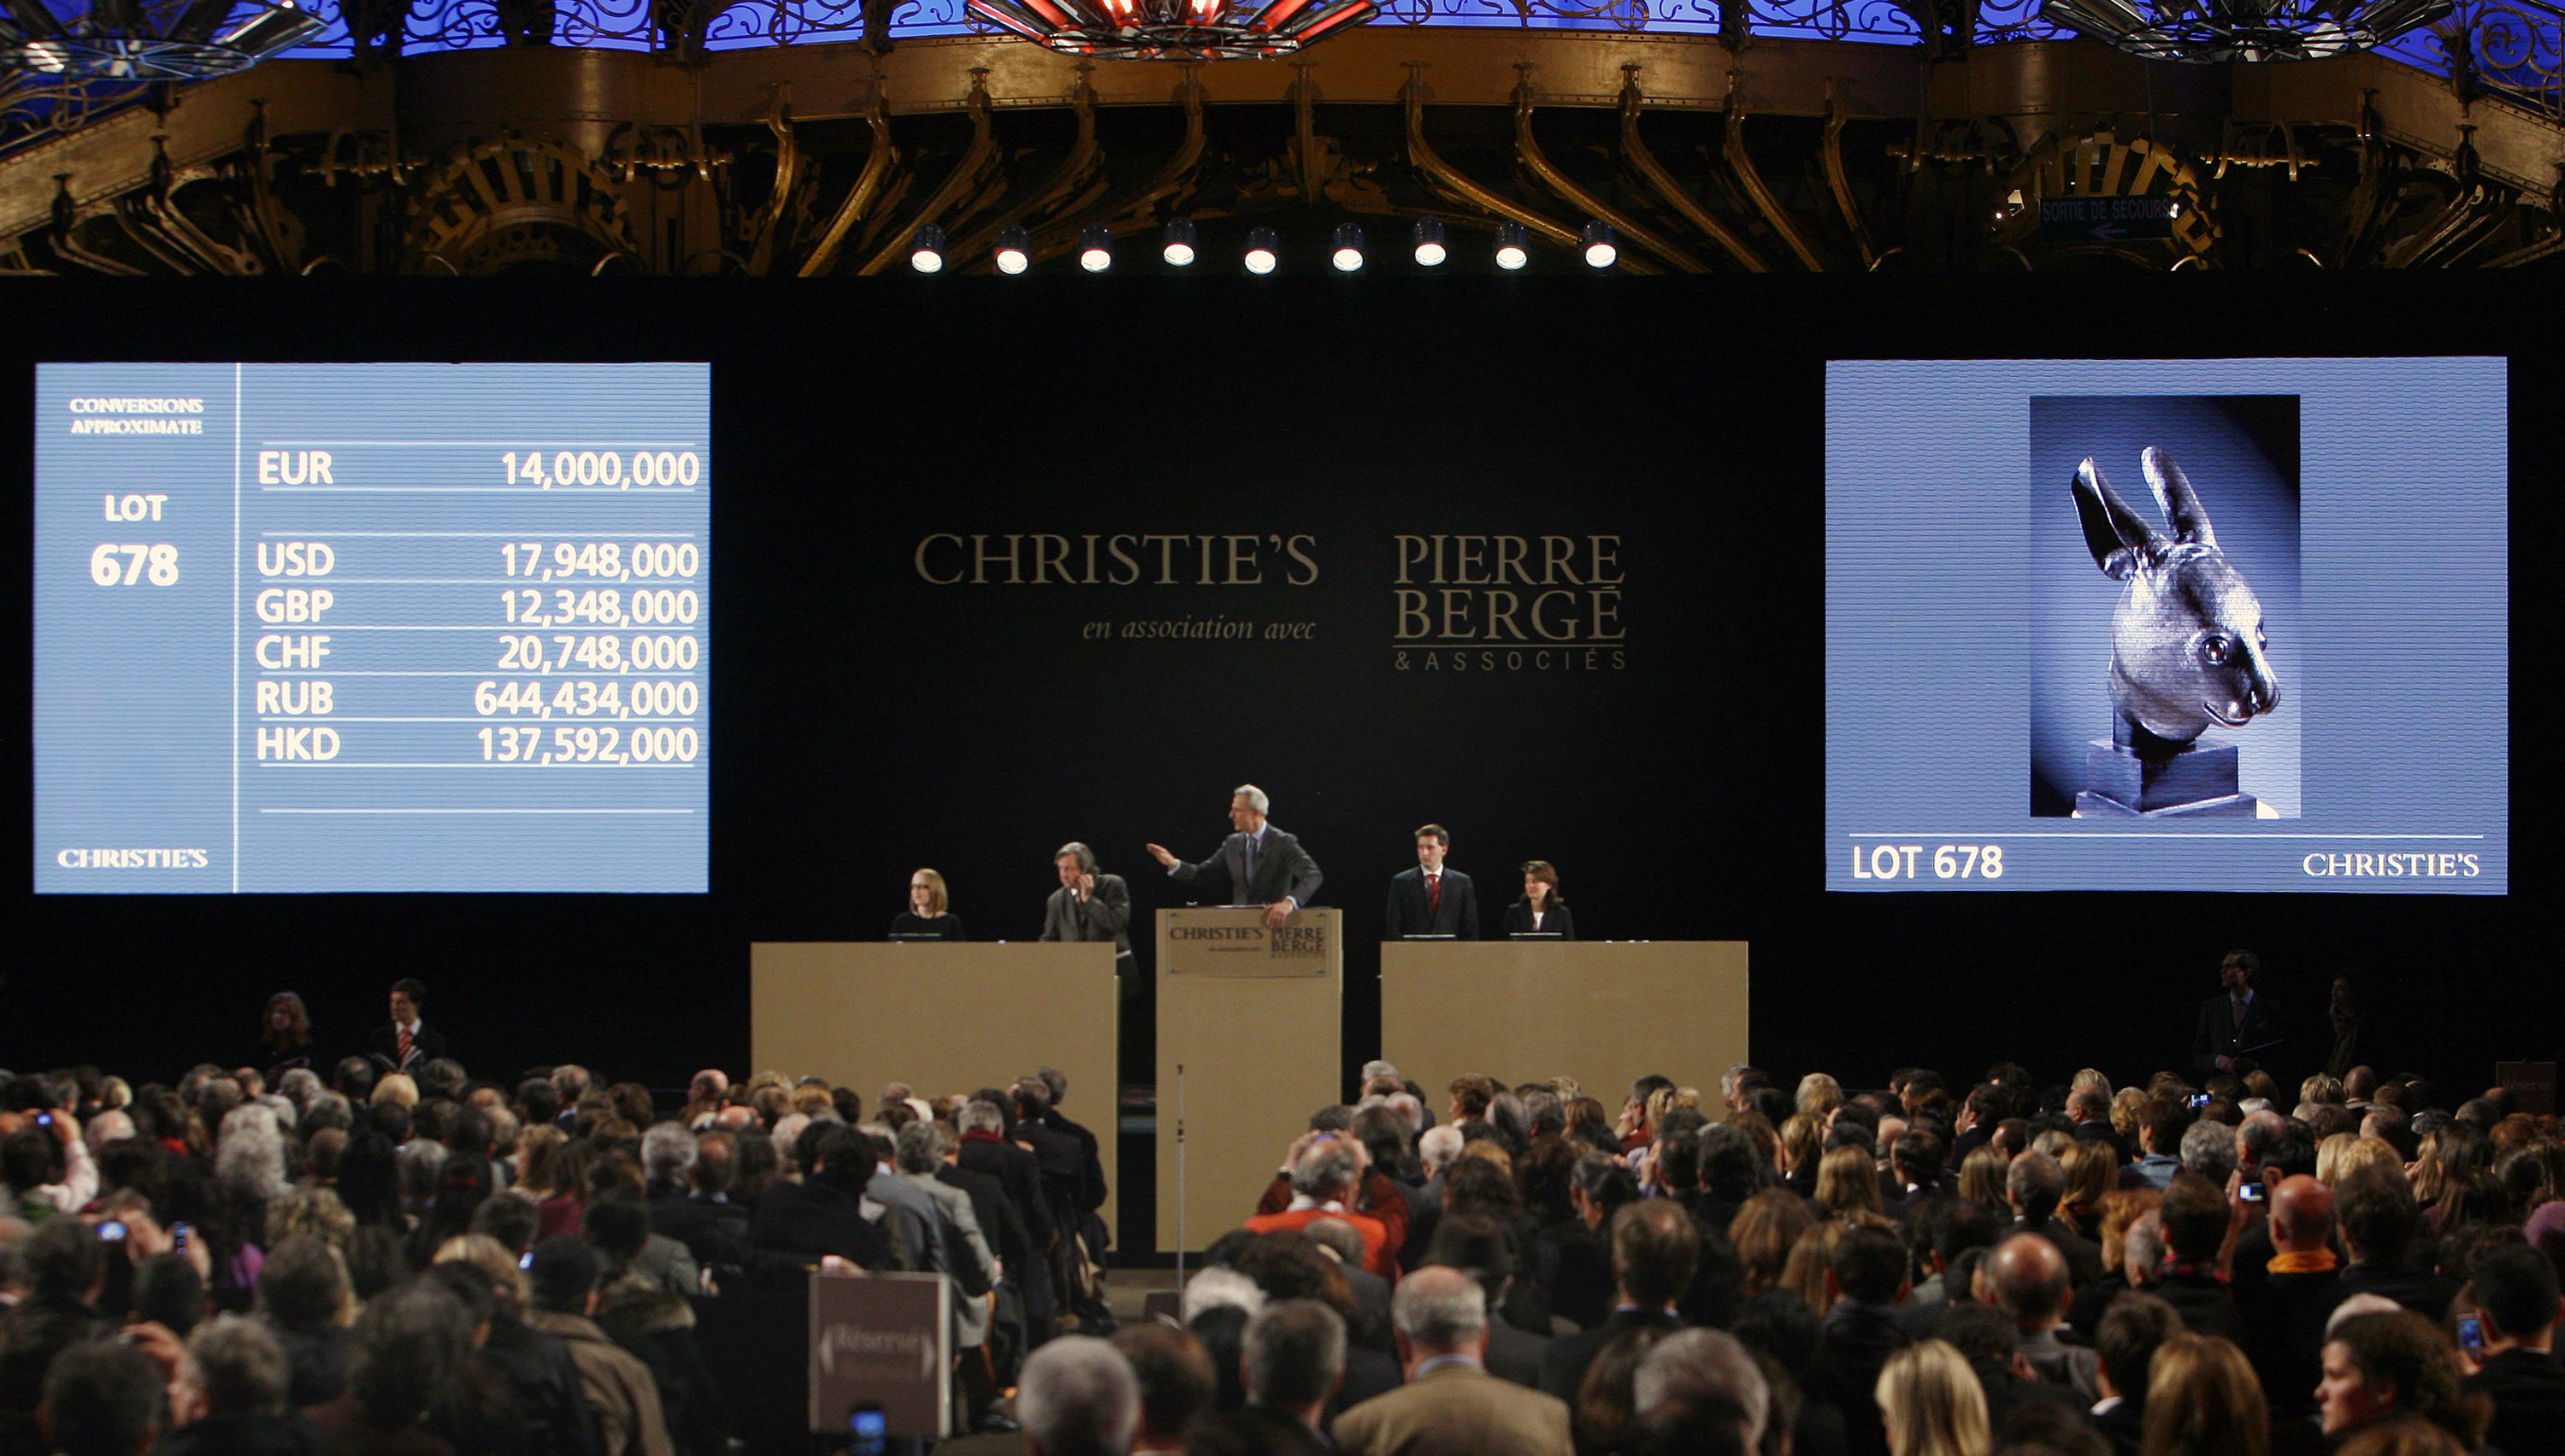 Christie's sale of the collection of Yves Saint Laurent and Pierre Bergéat the Grand Palais in Paris, Feb. 25, 2009; photo credit: AP Photo/Jacques Brinon